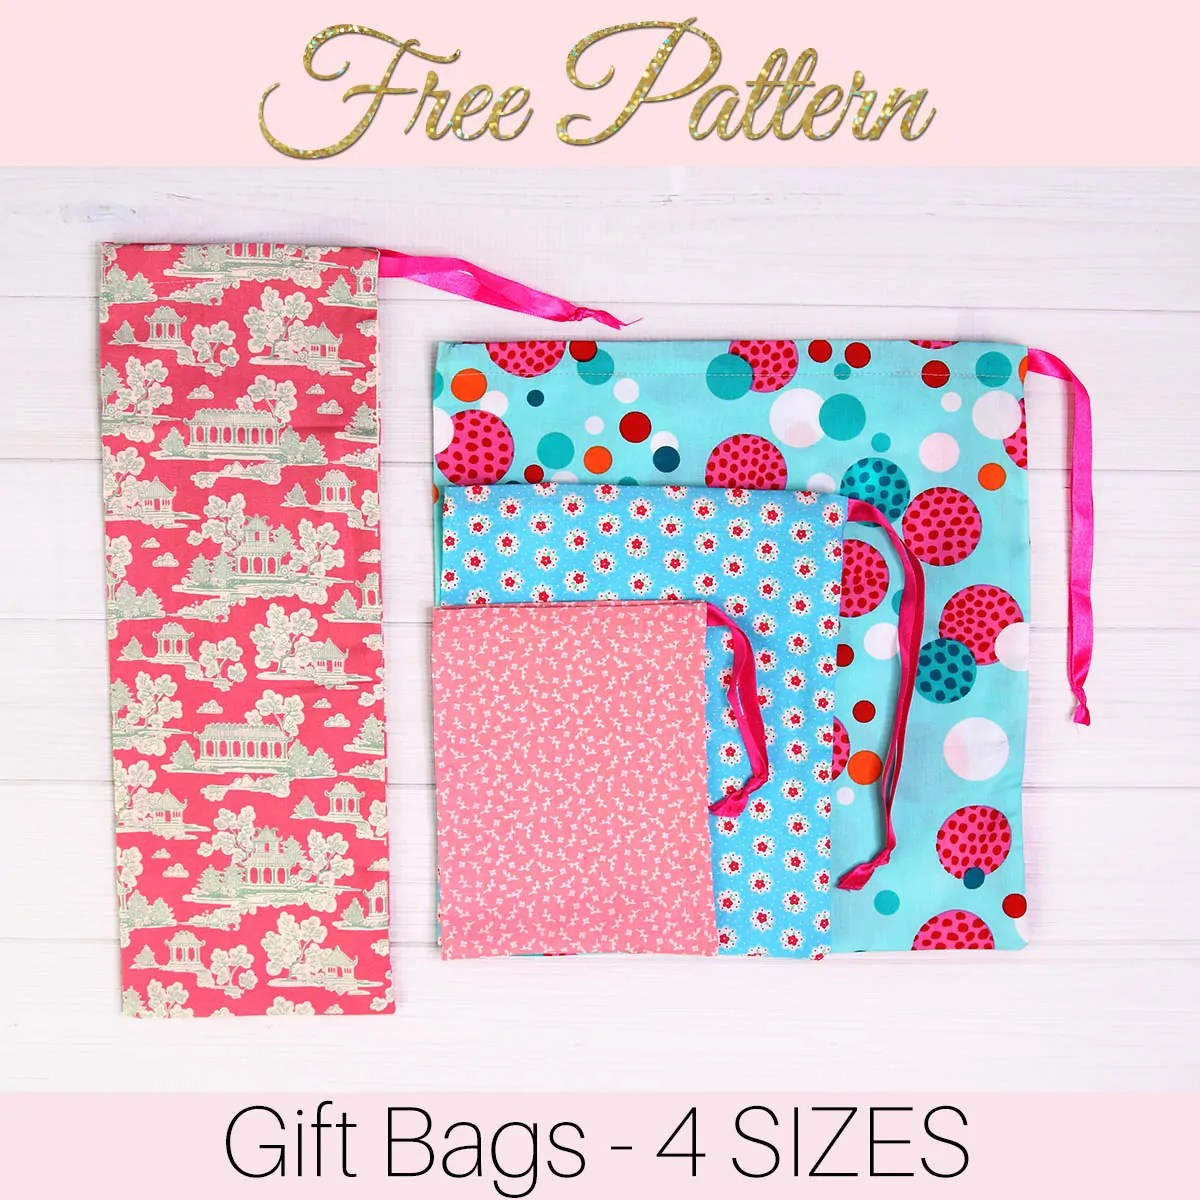 How To Make Gift Bags From Fabric In 5 Minutes 4 Sizes Treasurie